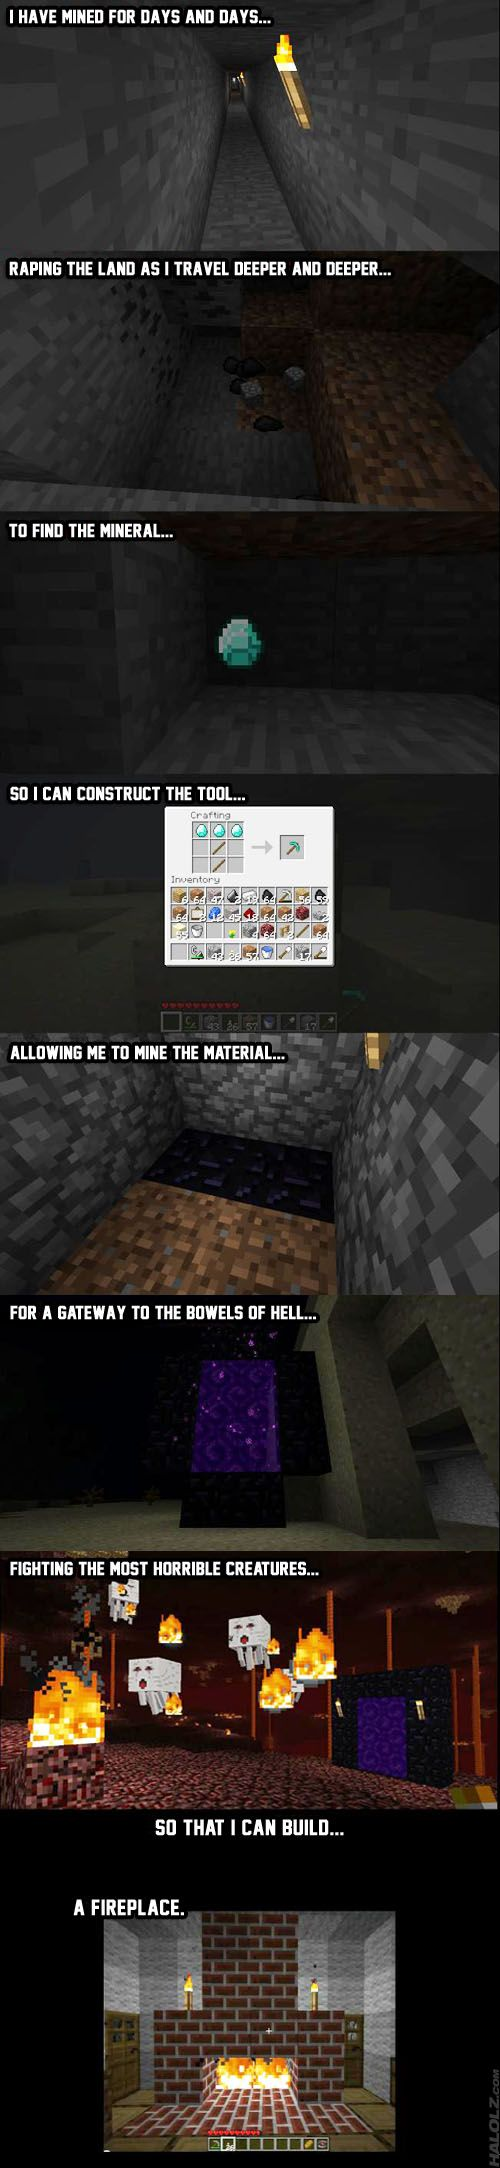 102 best minecraft images on pinterest minecraft buildings